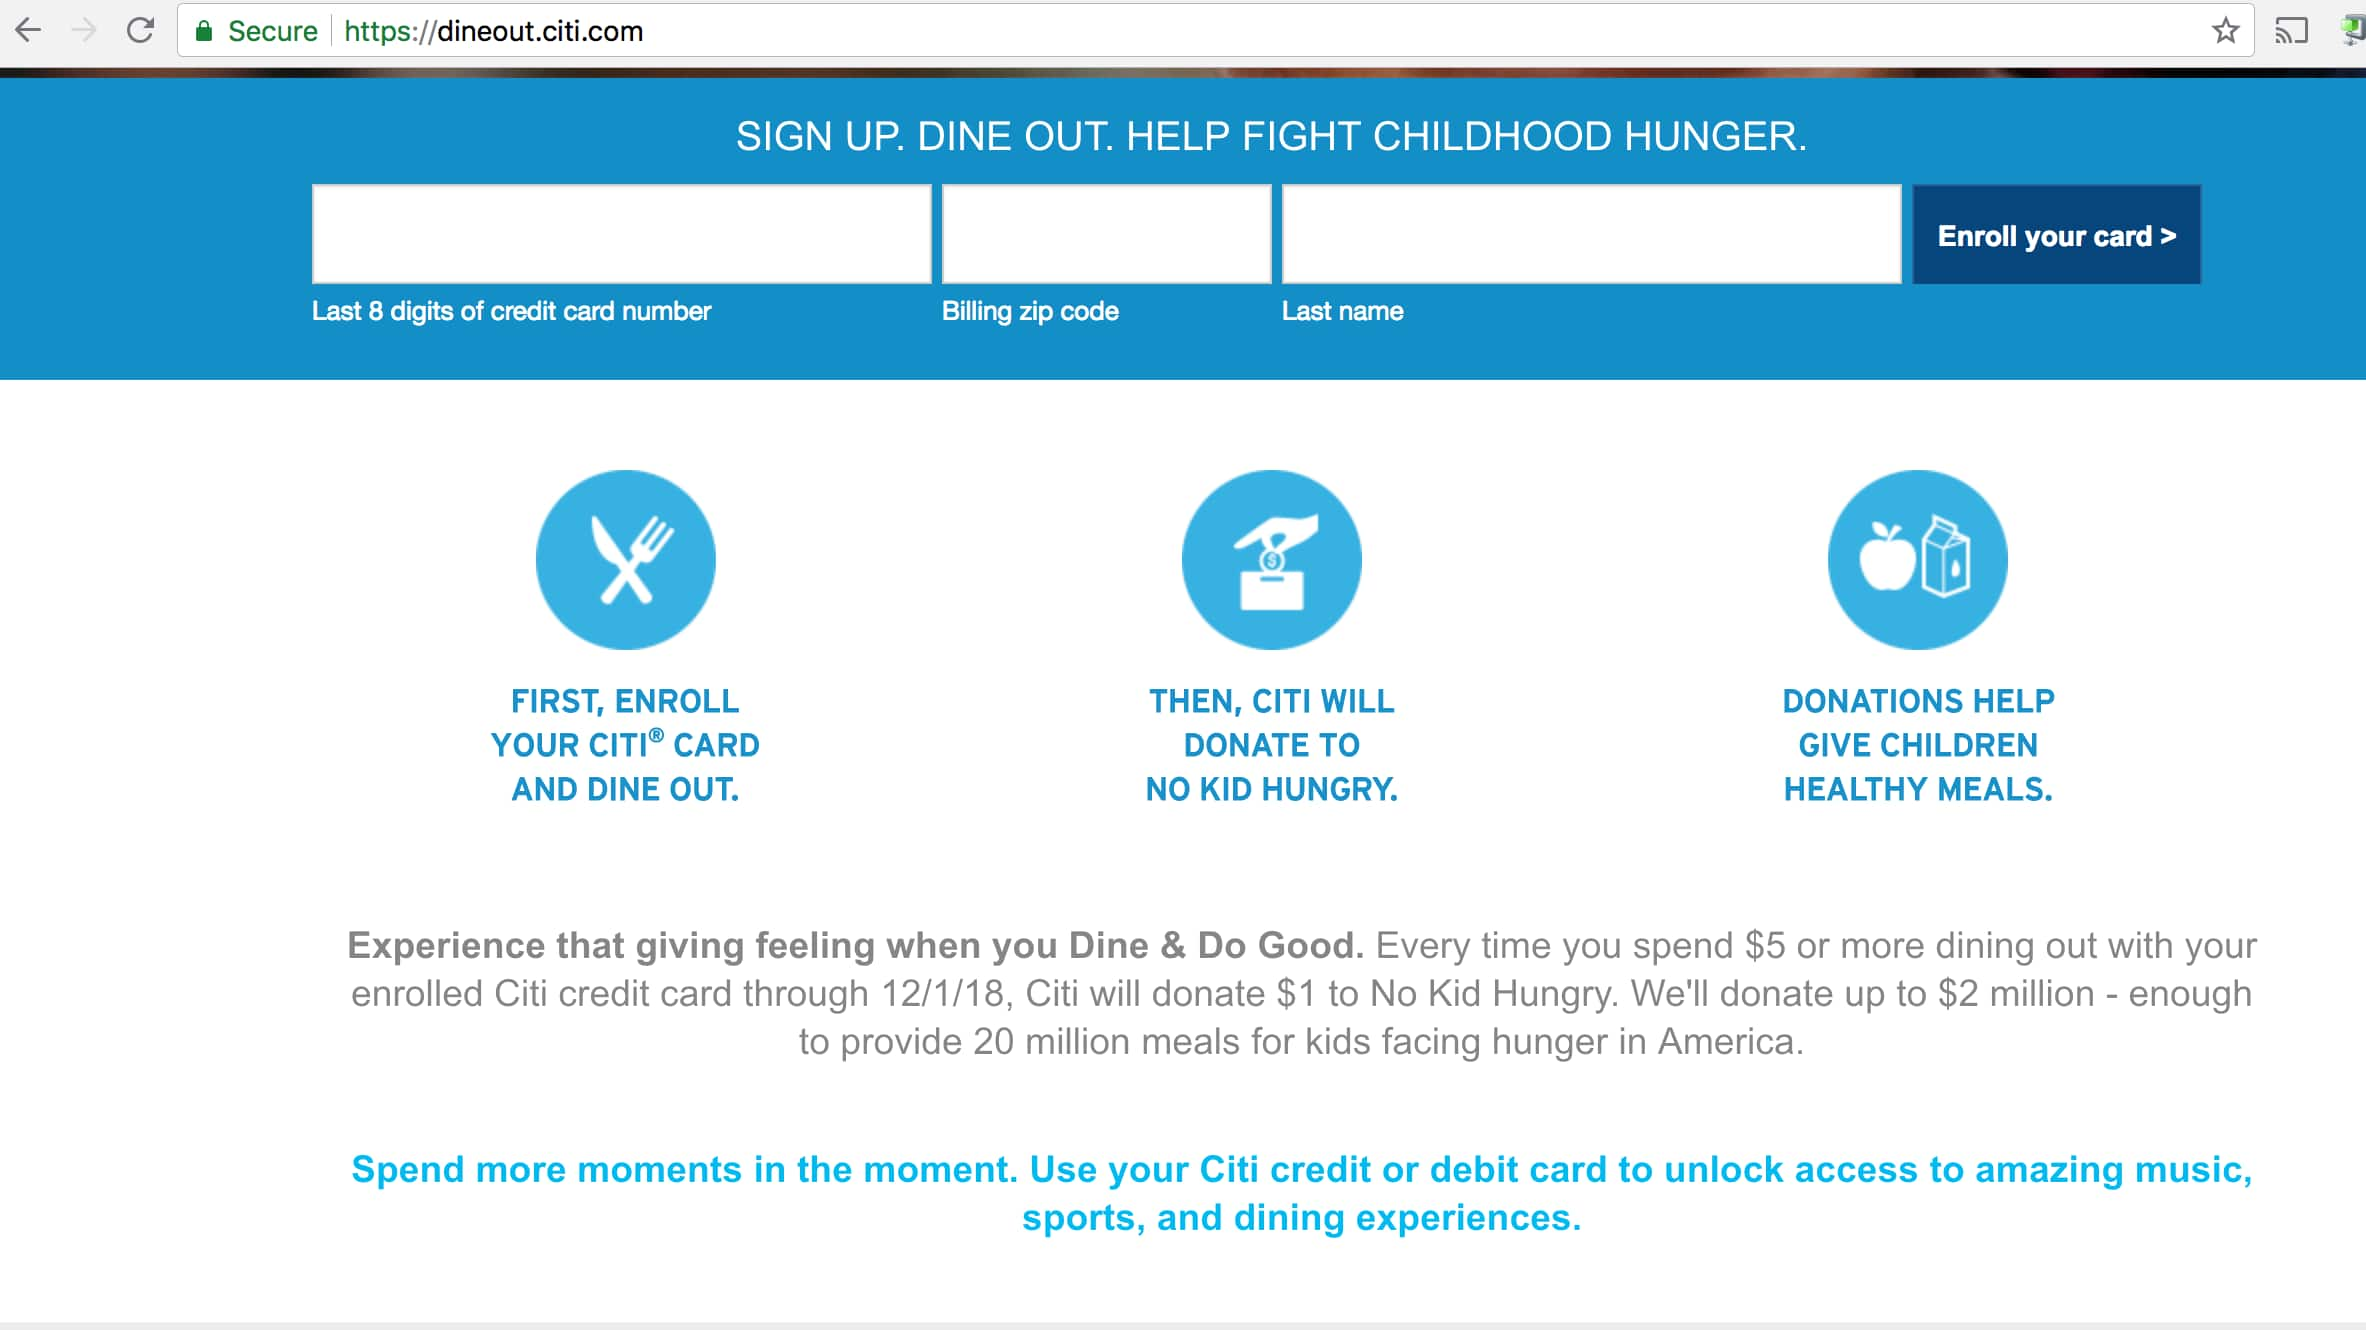 Citi Card - Dine and Do-Good Offer, Help End Childhood Hunger - no cost to you. YMMV